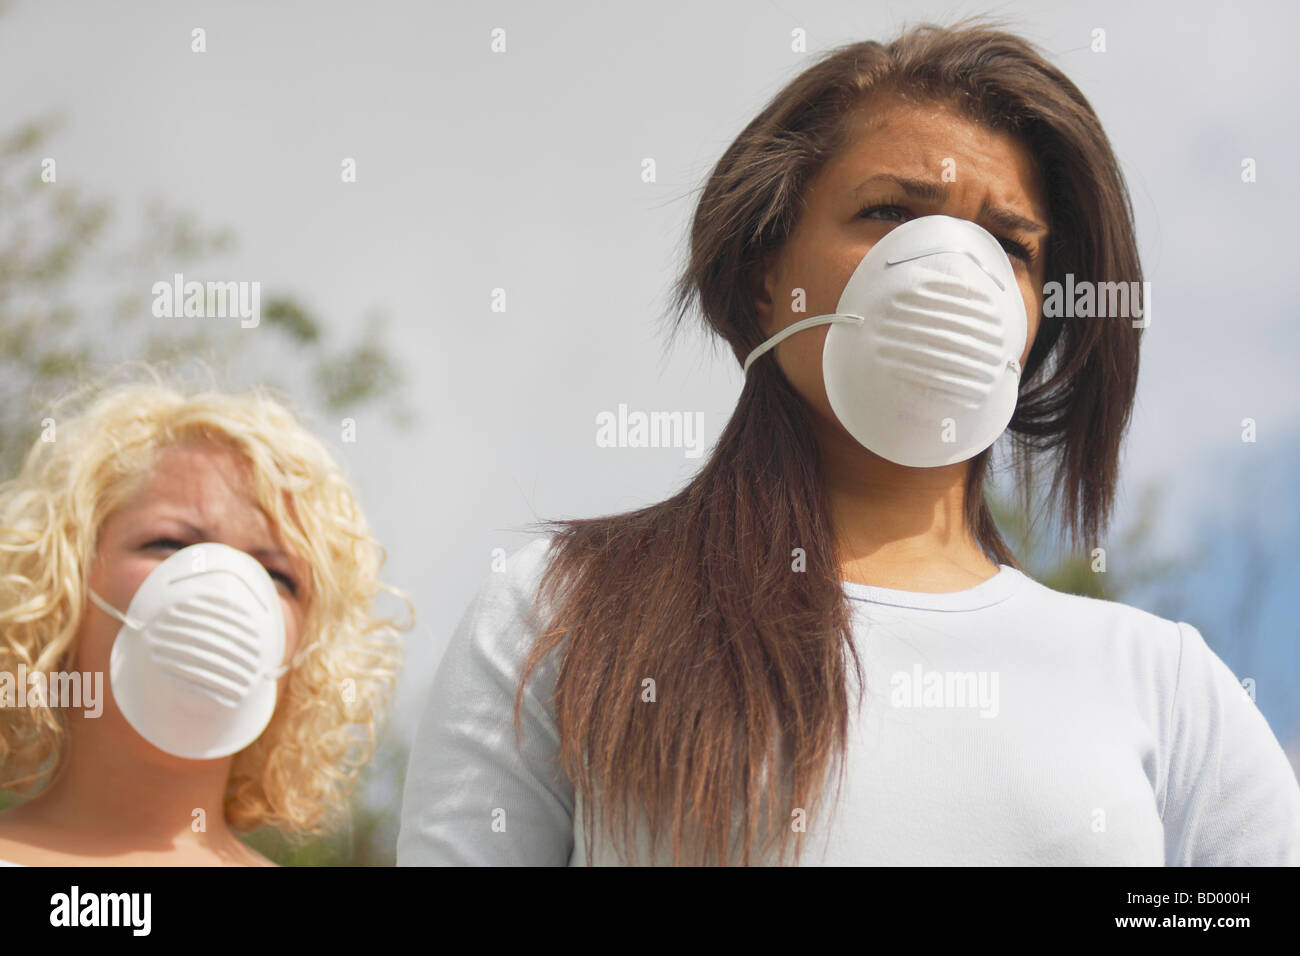 two young women in street wearing protective face filter masks - Stock Image